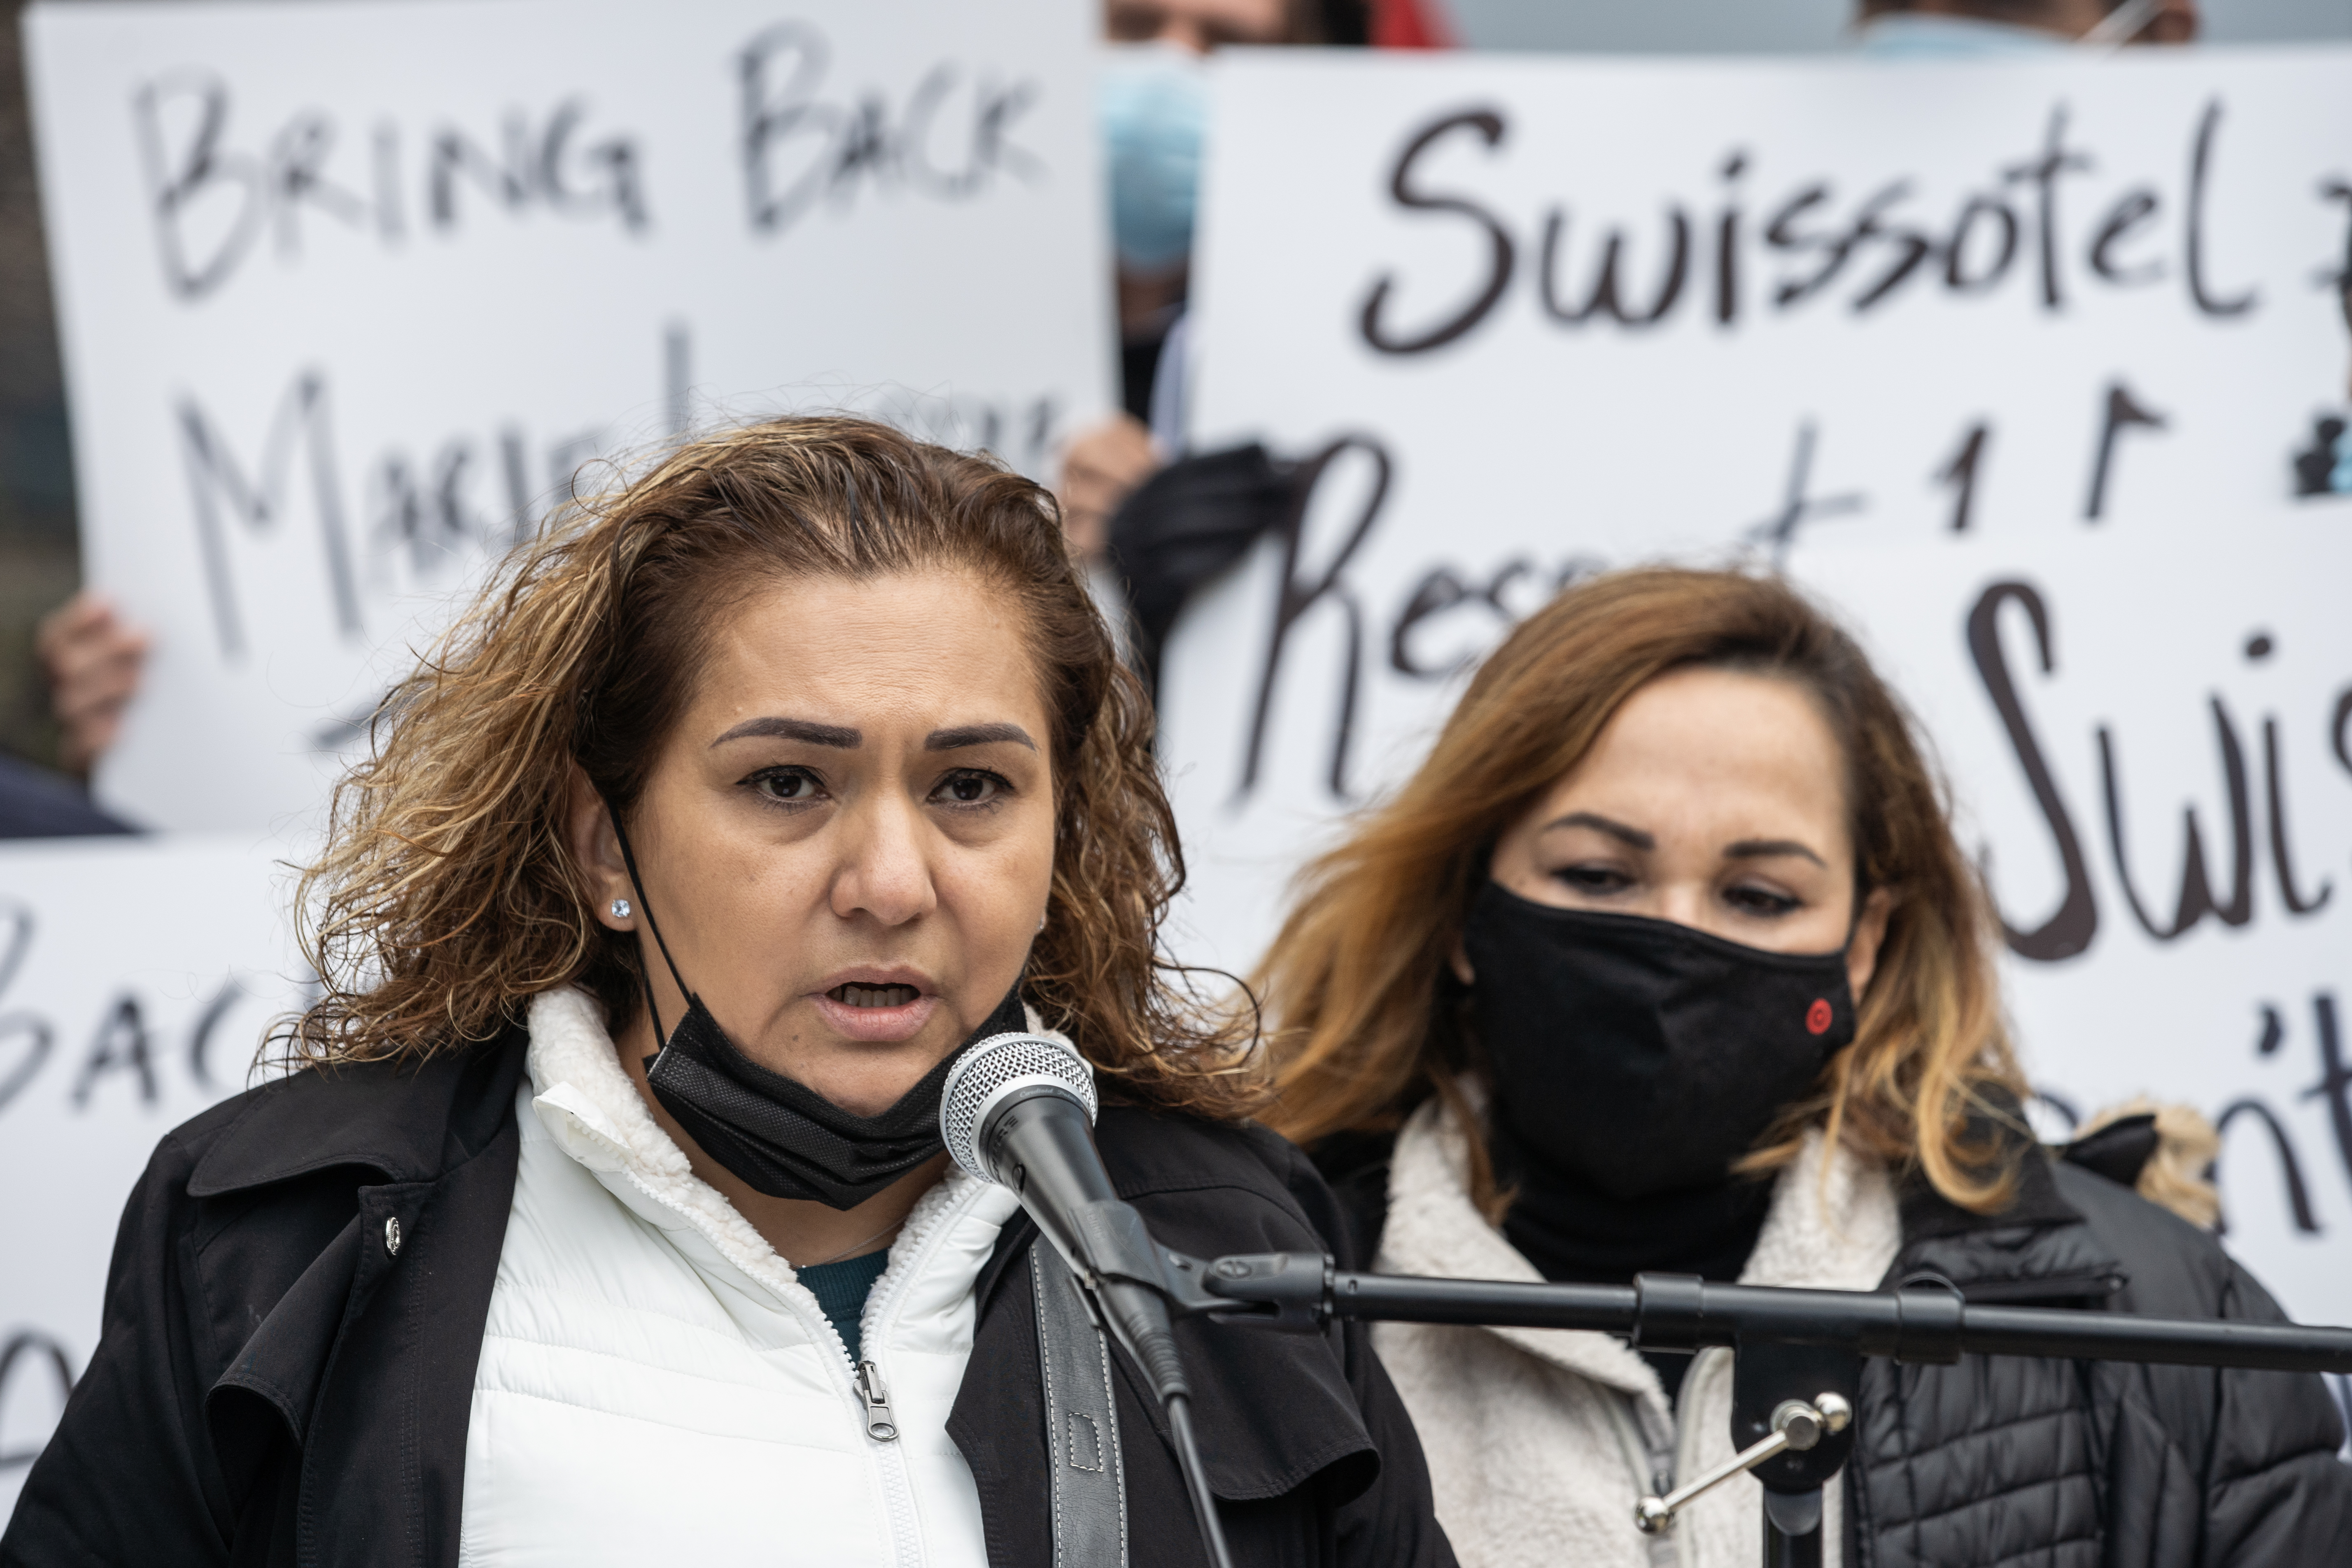 Former Swissotel employee Maria Ruiz speaks during a press conference outside the Swissotel, 323 E. Wacker Dr. in the Near East Side neighborhood, Tuesday afternoon, October 26, 2021.